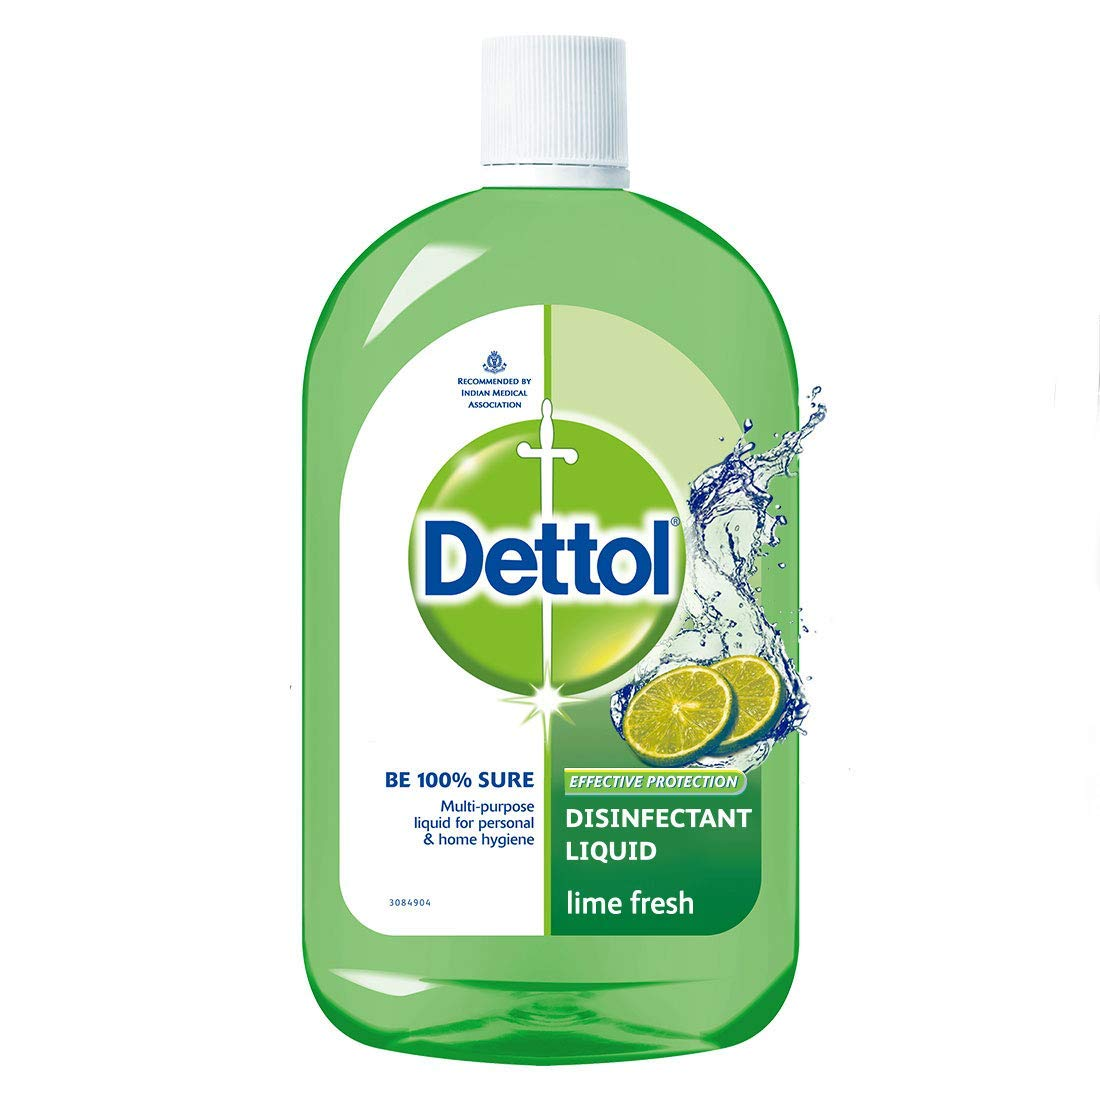 Dettol disinfectant cleaner